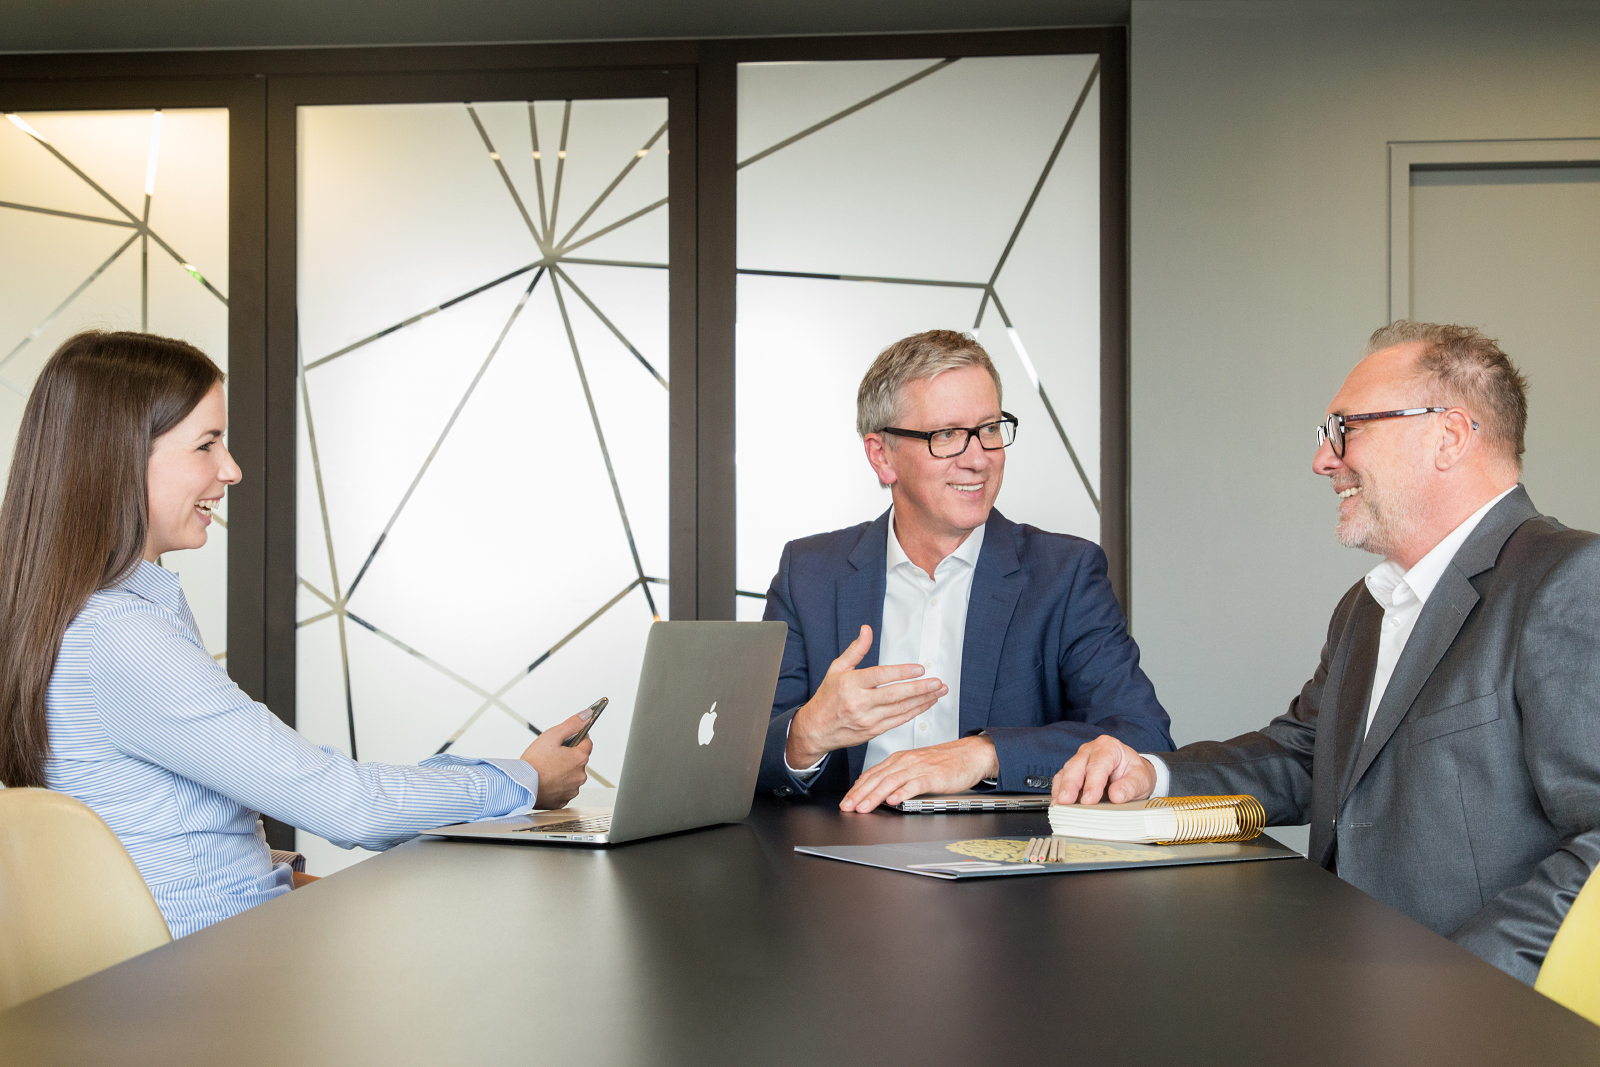 02 schneider executives consulting firma businessportraits - Consulting Fotografie im Design Office